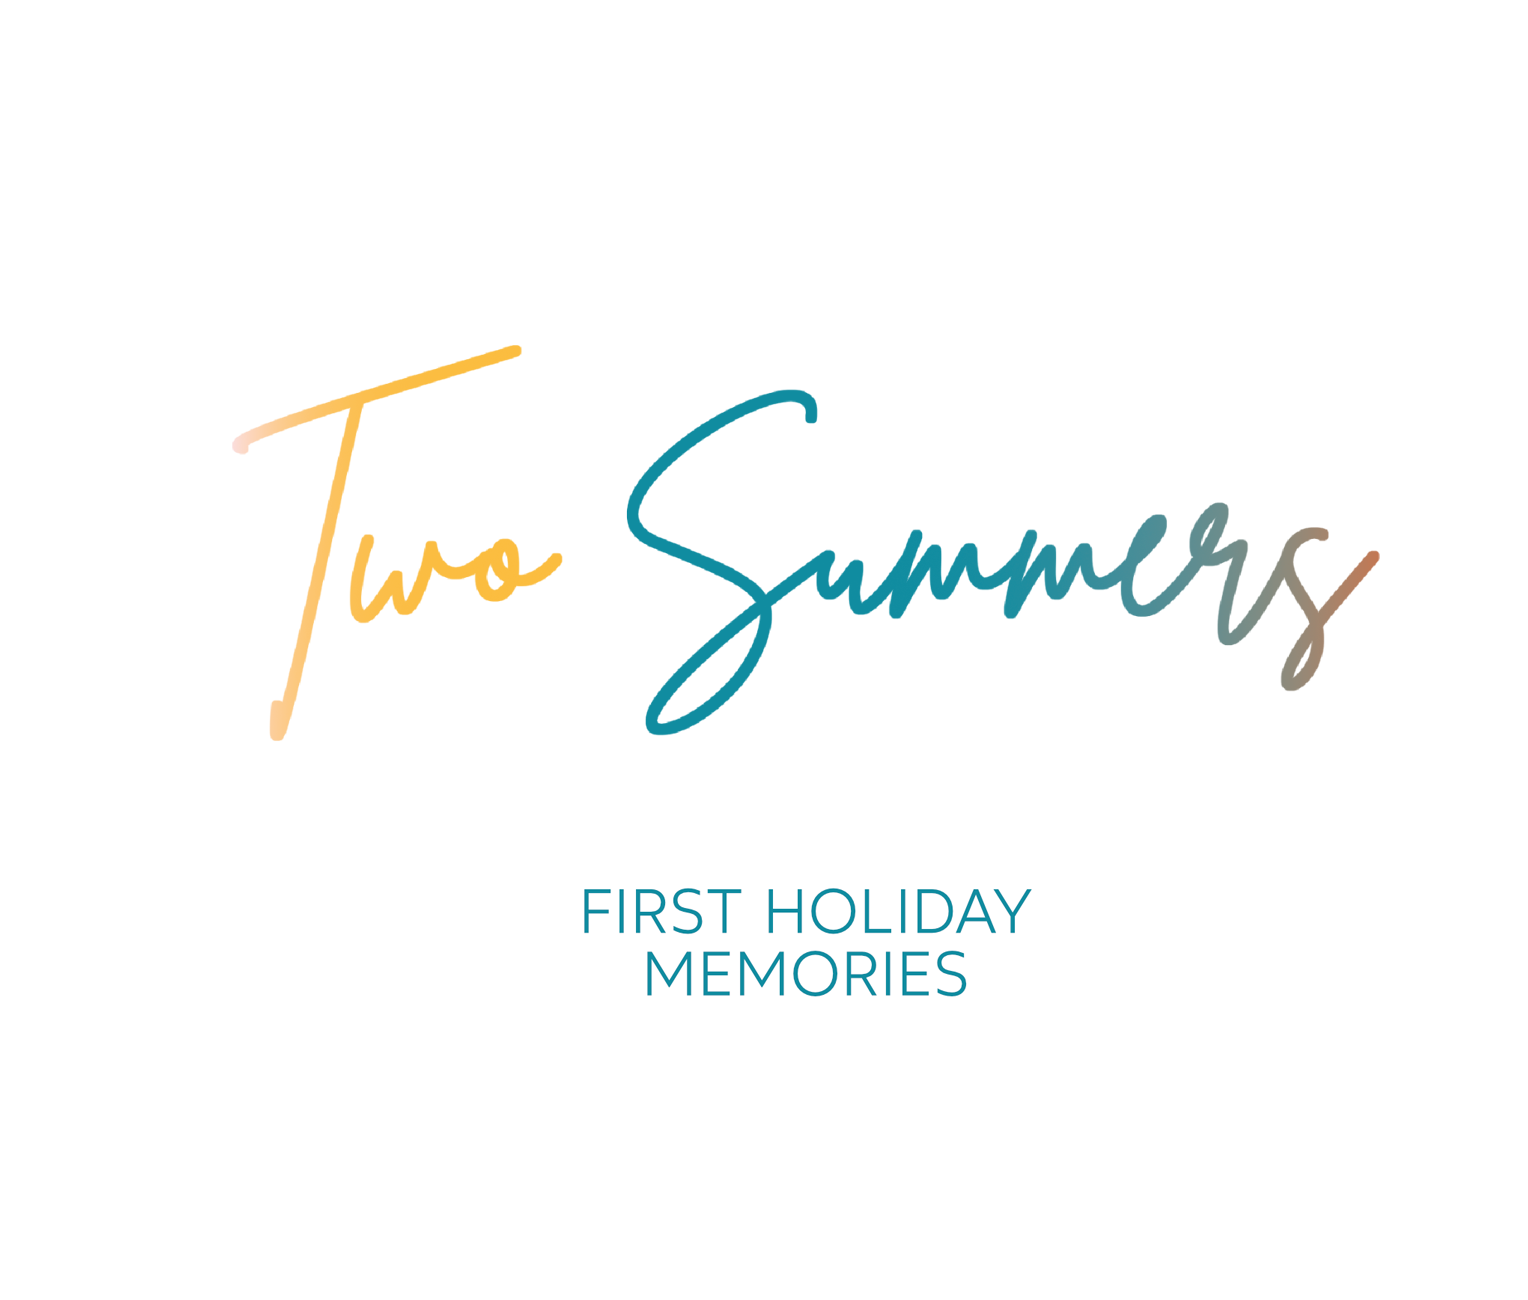 Two Summers: first holiday memories